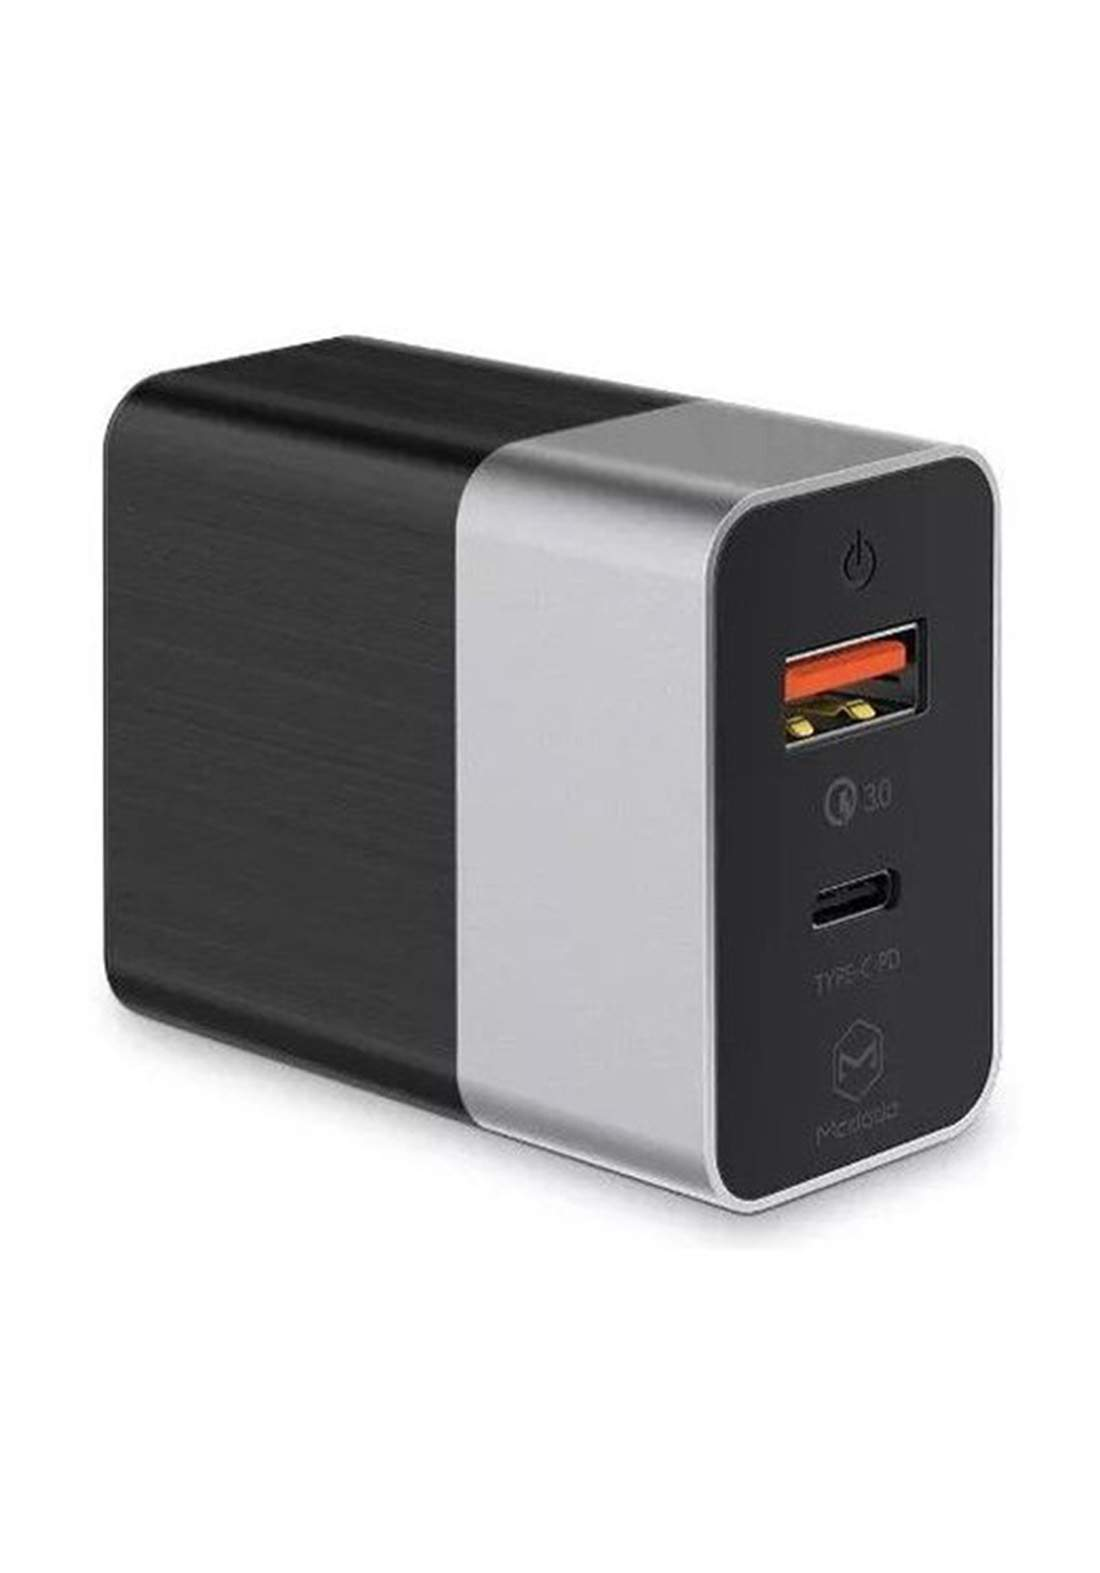 (10951)Mcdodo Ch-5621 Cube Series Pd + Qc 3.0 Charger - Black شاحنة